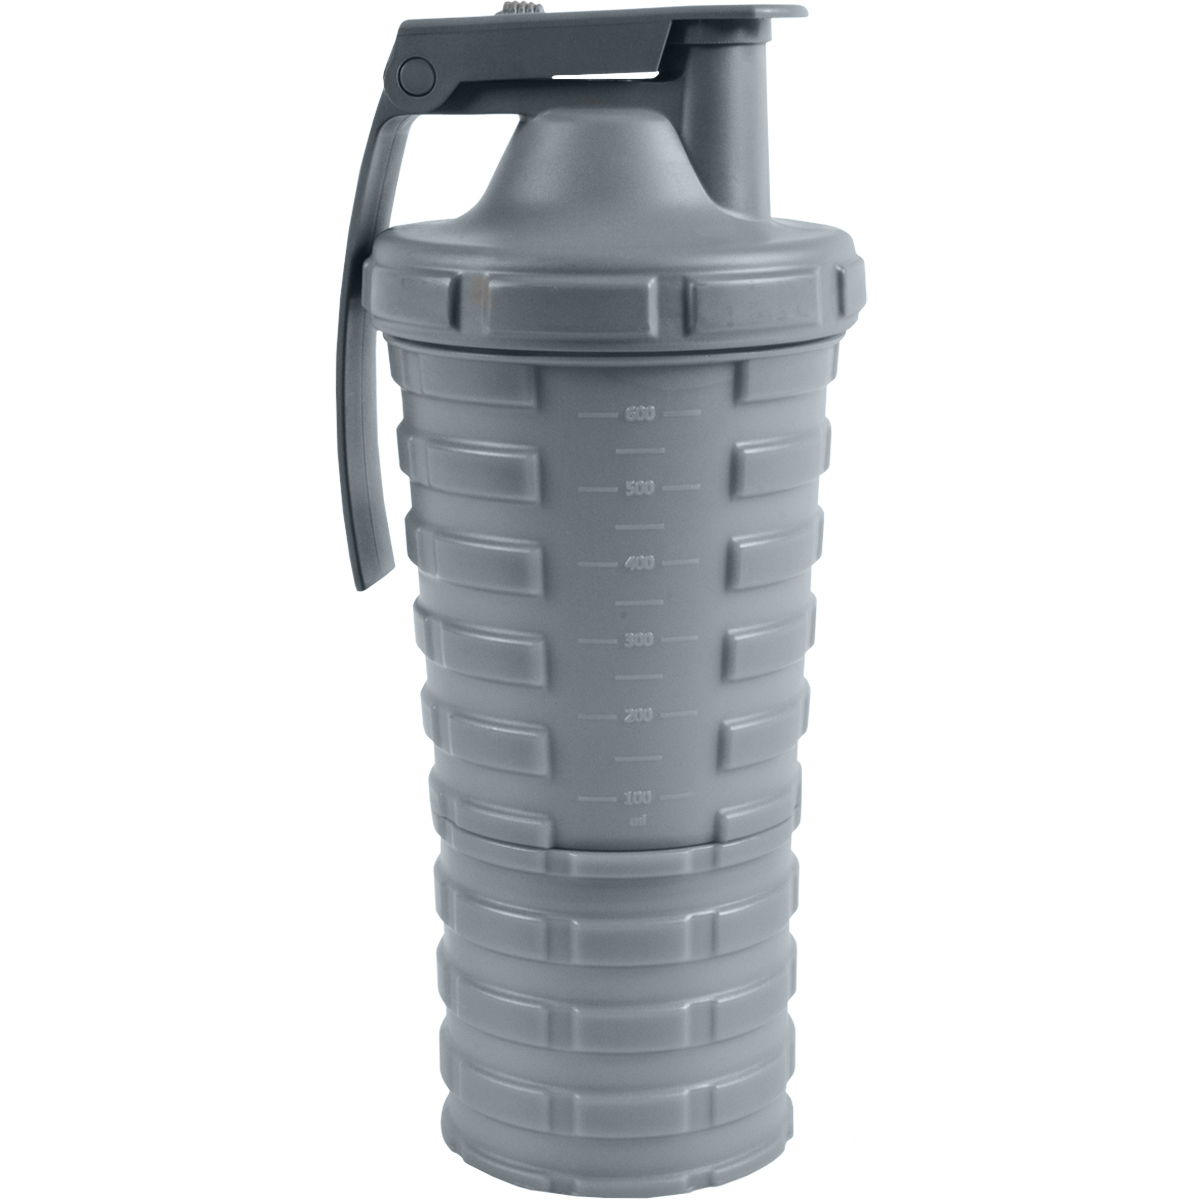 thumbnail 11 - Grenade-20-oz-Shaker-Blender-Mixer-Bottle-with-600ml-Protein-Cup-Compartment